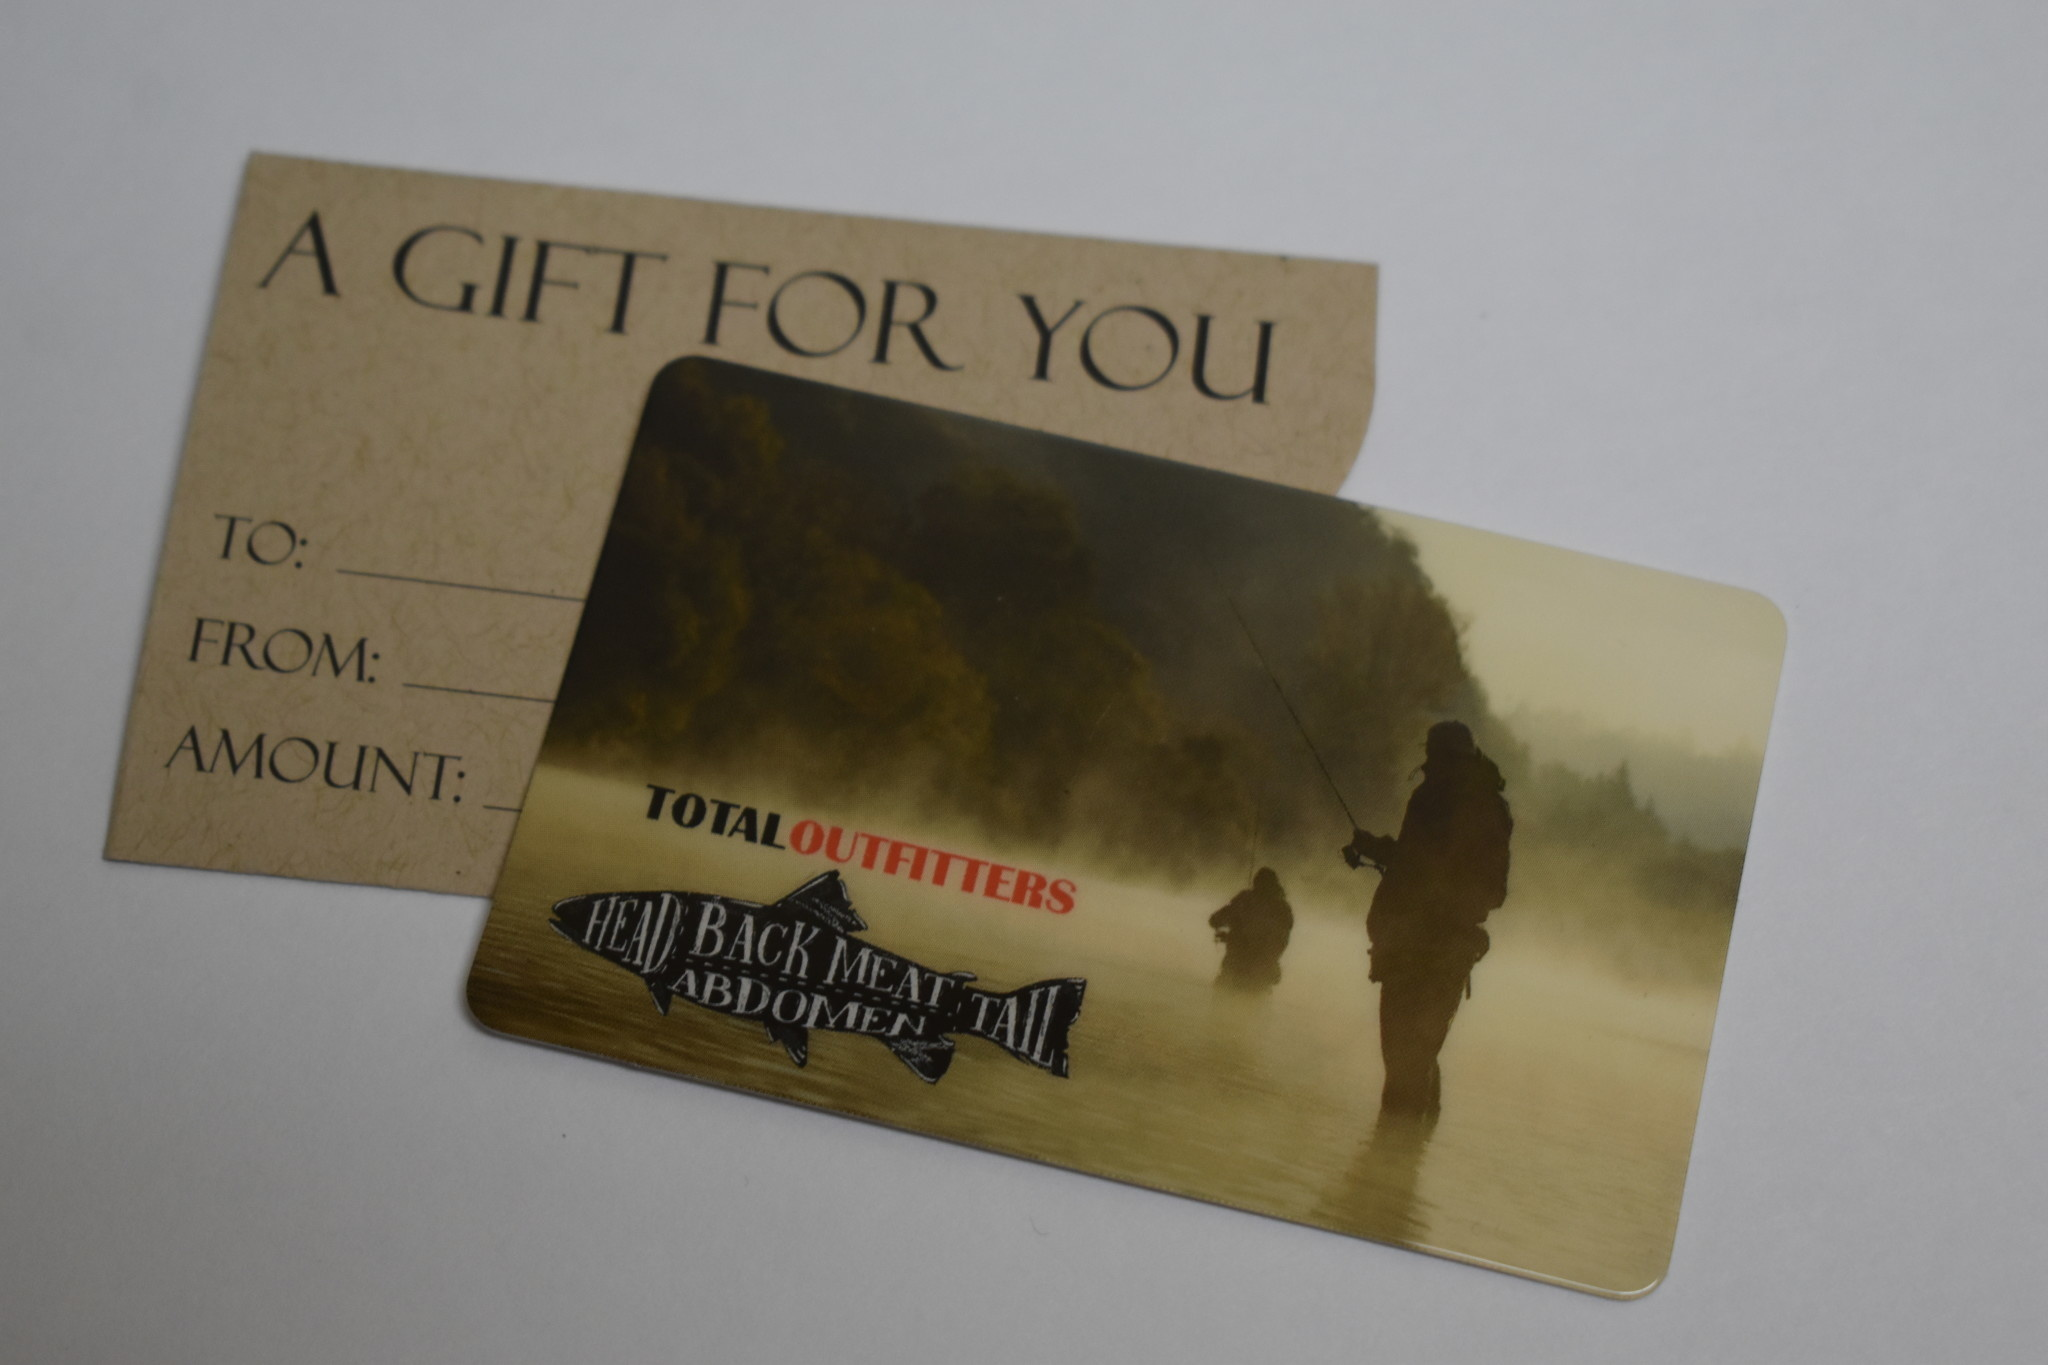 TOTAL OUTFITTERS TOTAL OUTFITTERS GIFT CARDS